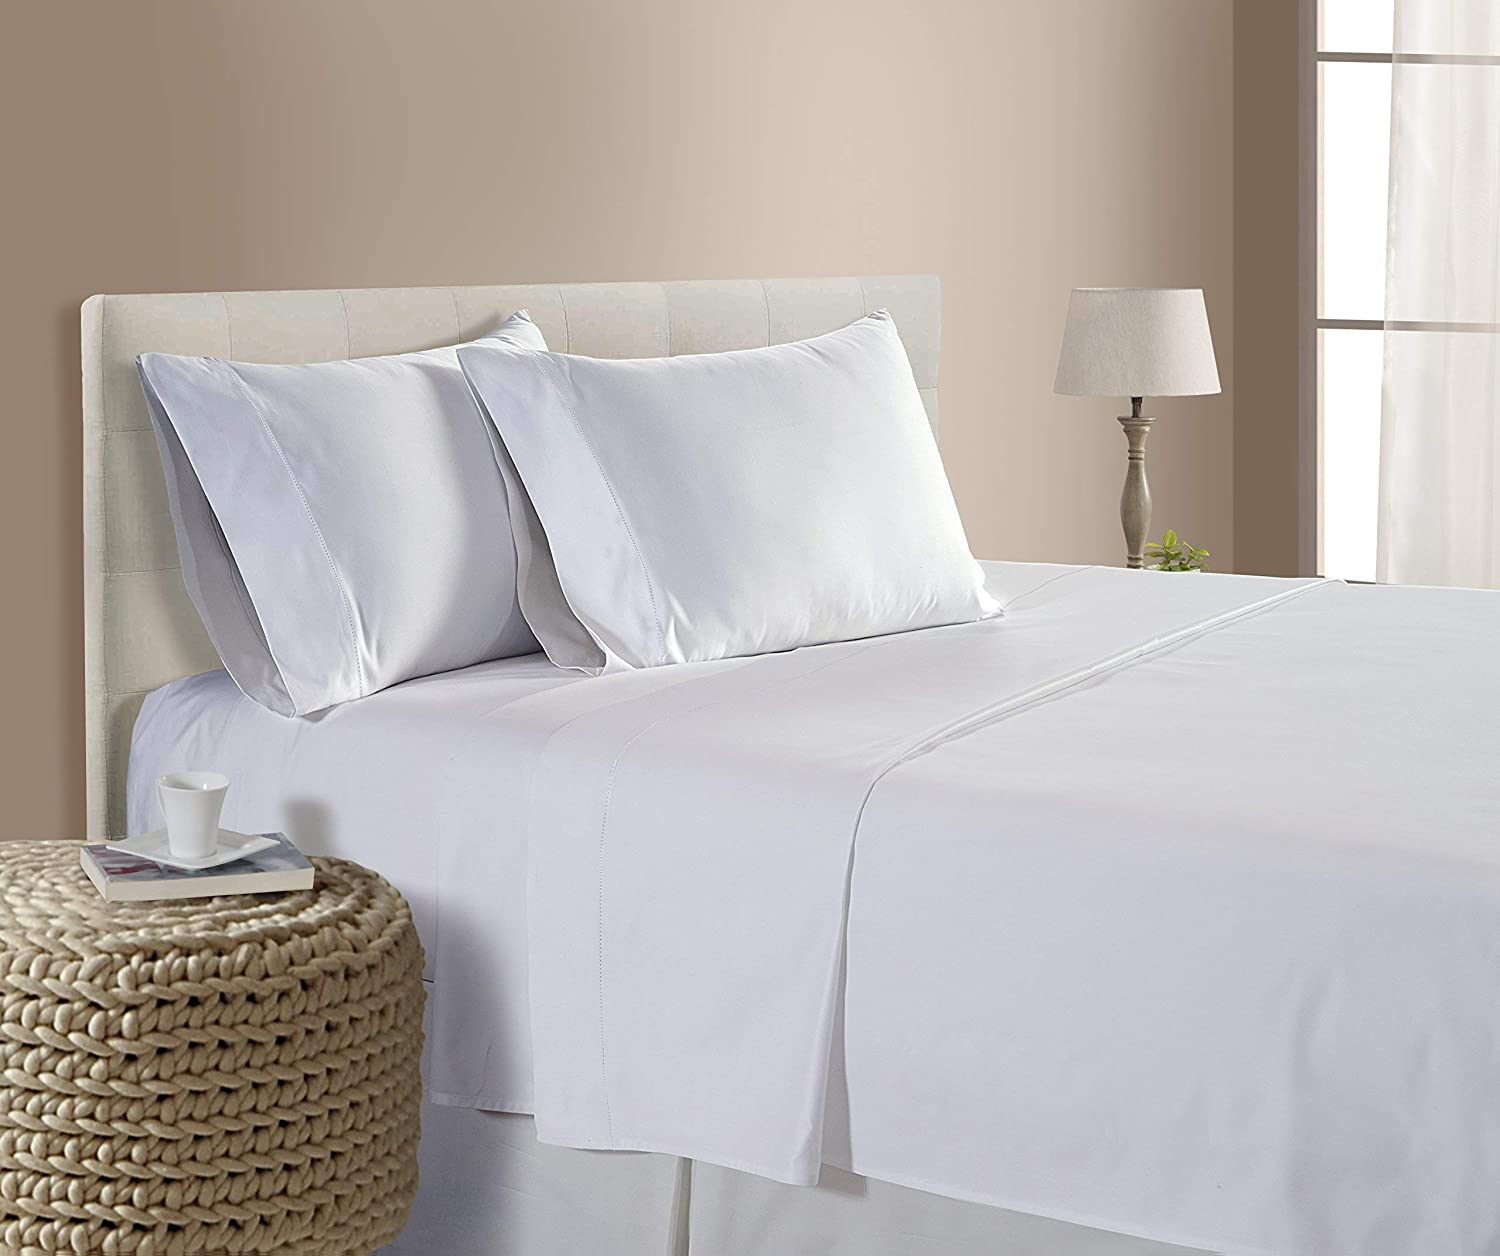 Heavy 1500 Thread Count Egyptian Special New Shipping Free Shipping price for a limited time Cotton Size Bed Full Shee 6-PCs